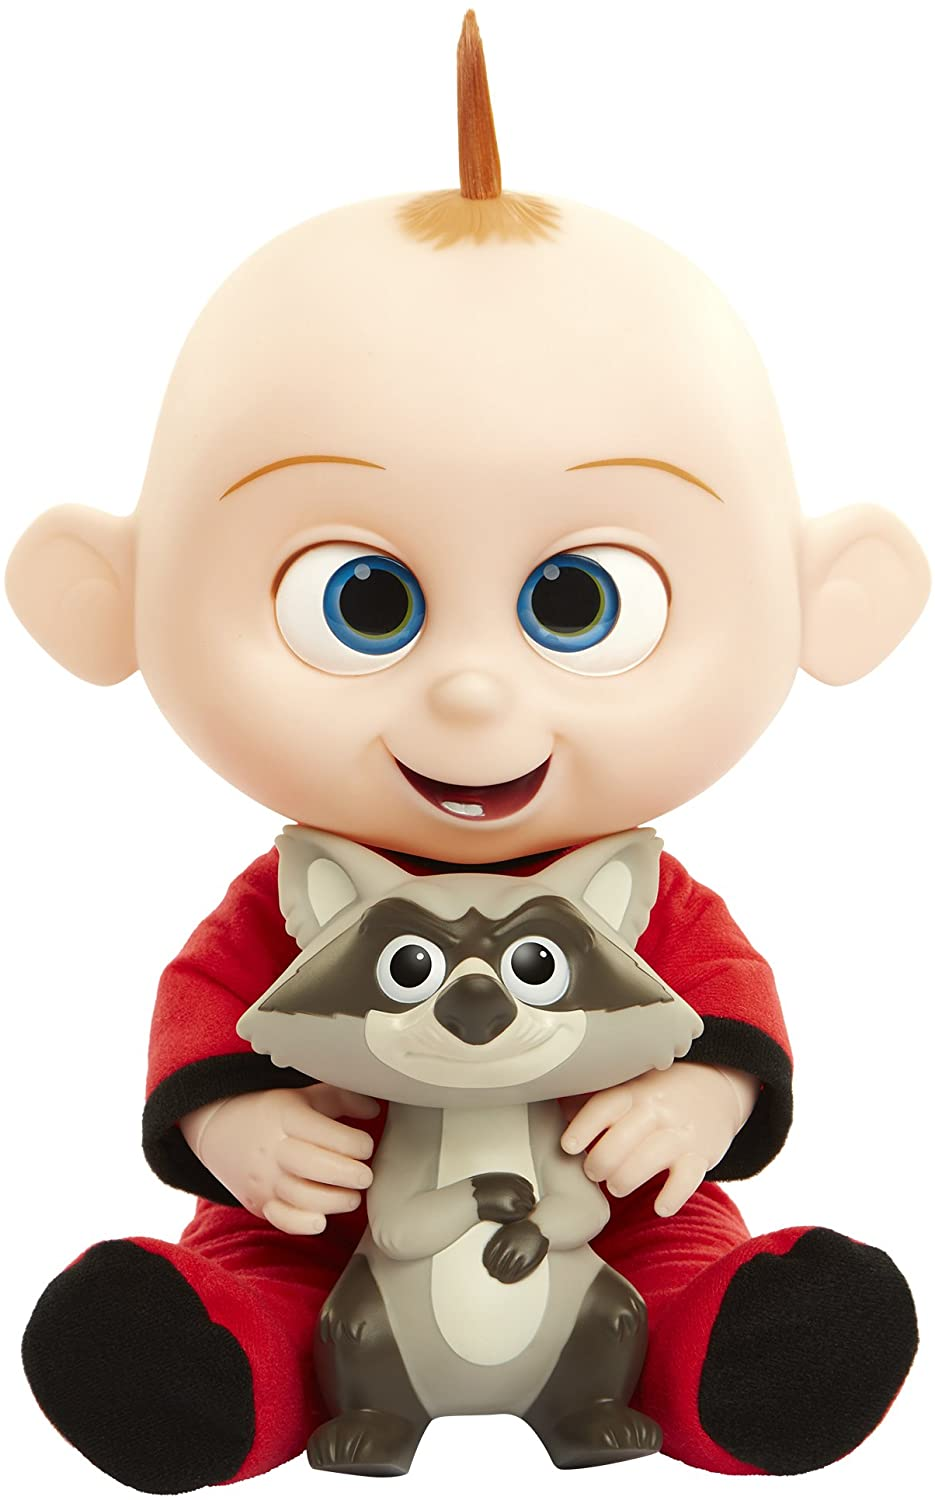 Amazon Com The Incredibles 2 Jack Jack Plush Figure Features Lights Sounds And Comes With Raccoon Toy Toys Games